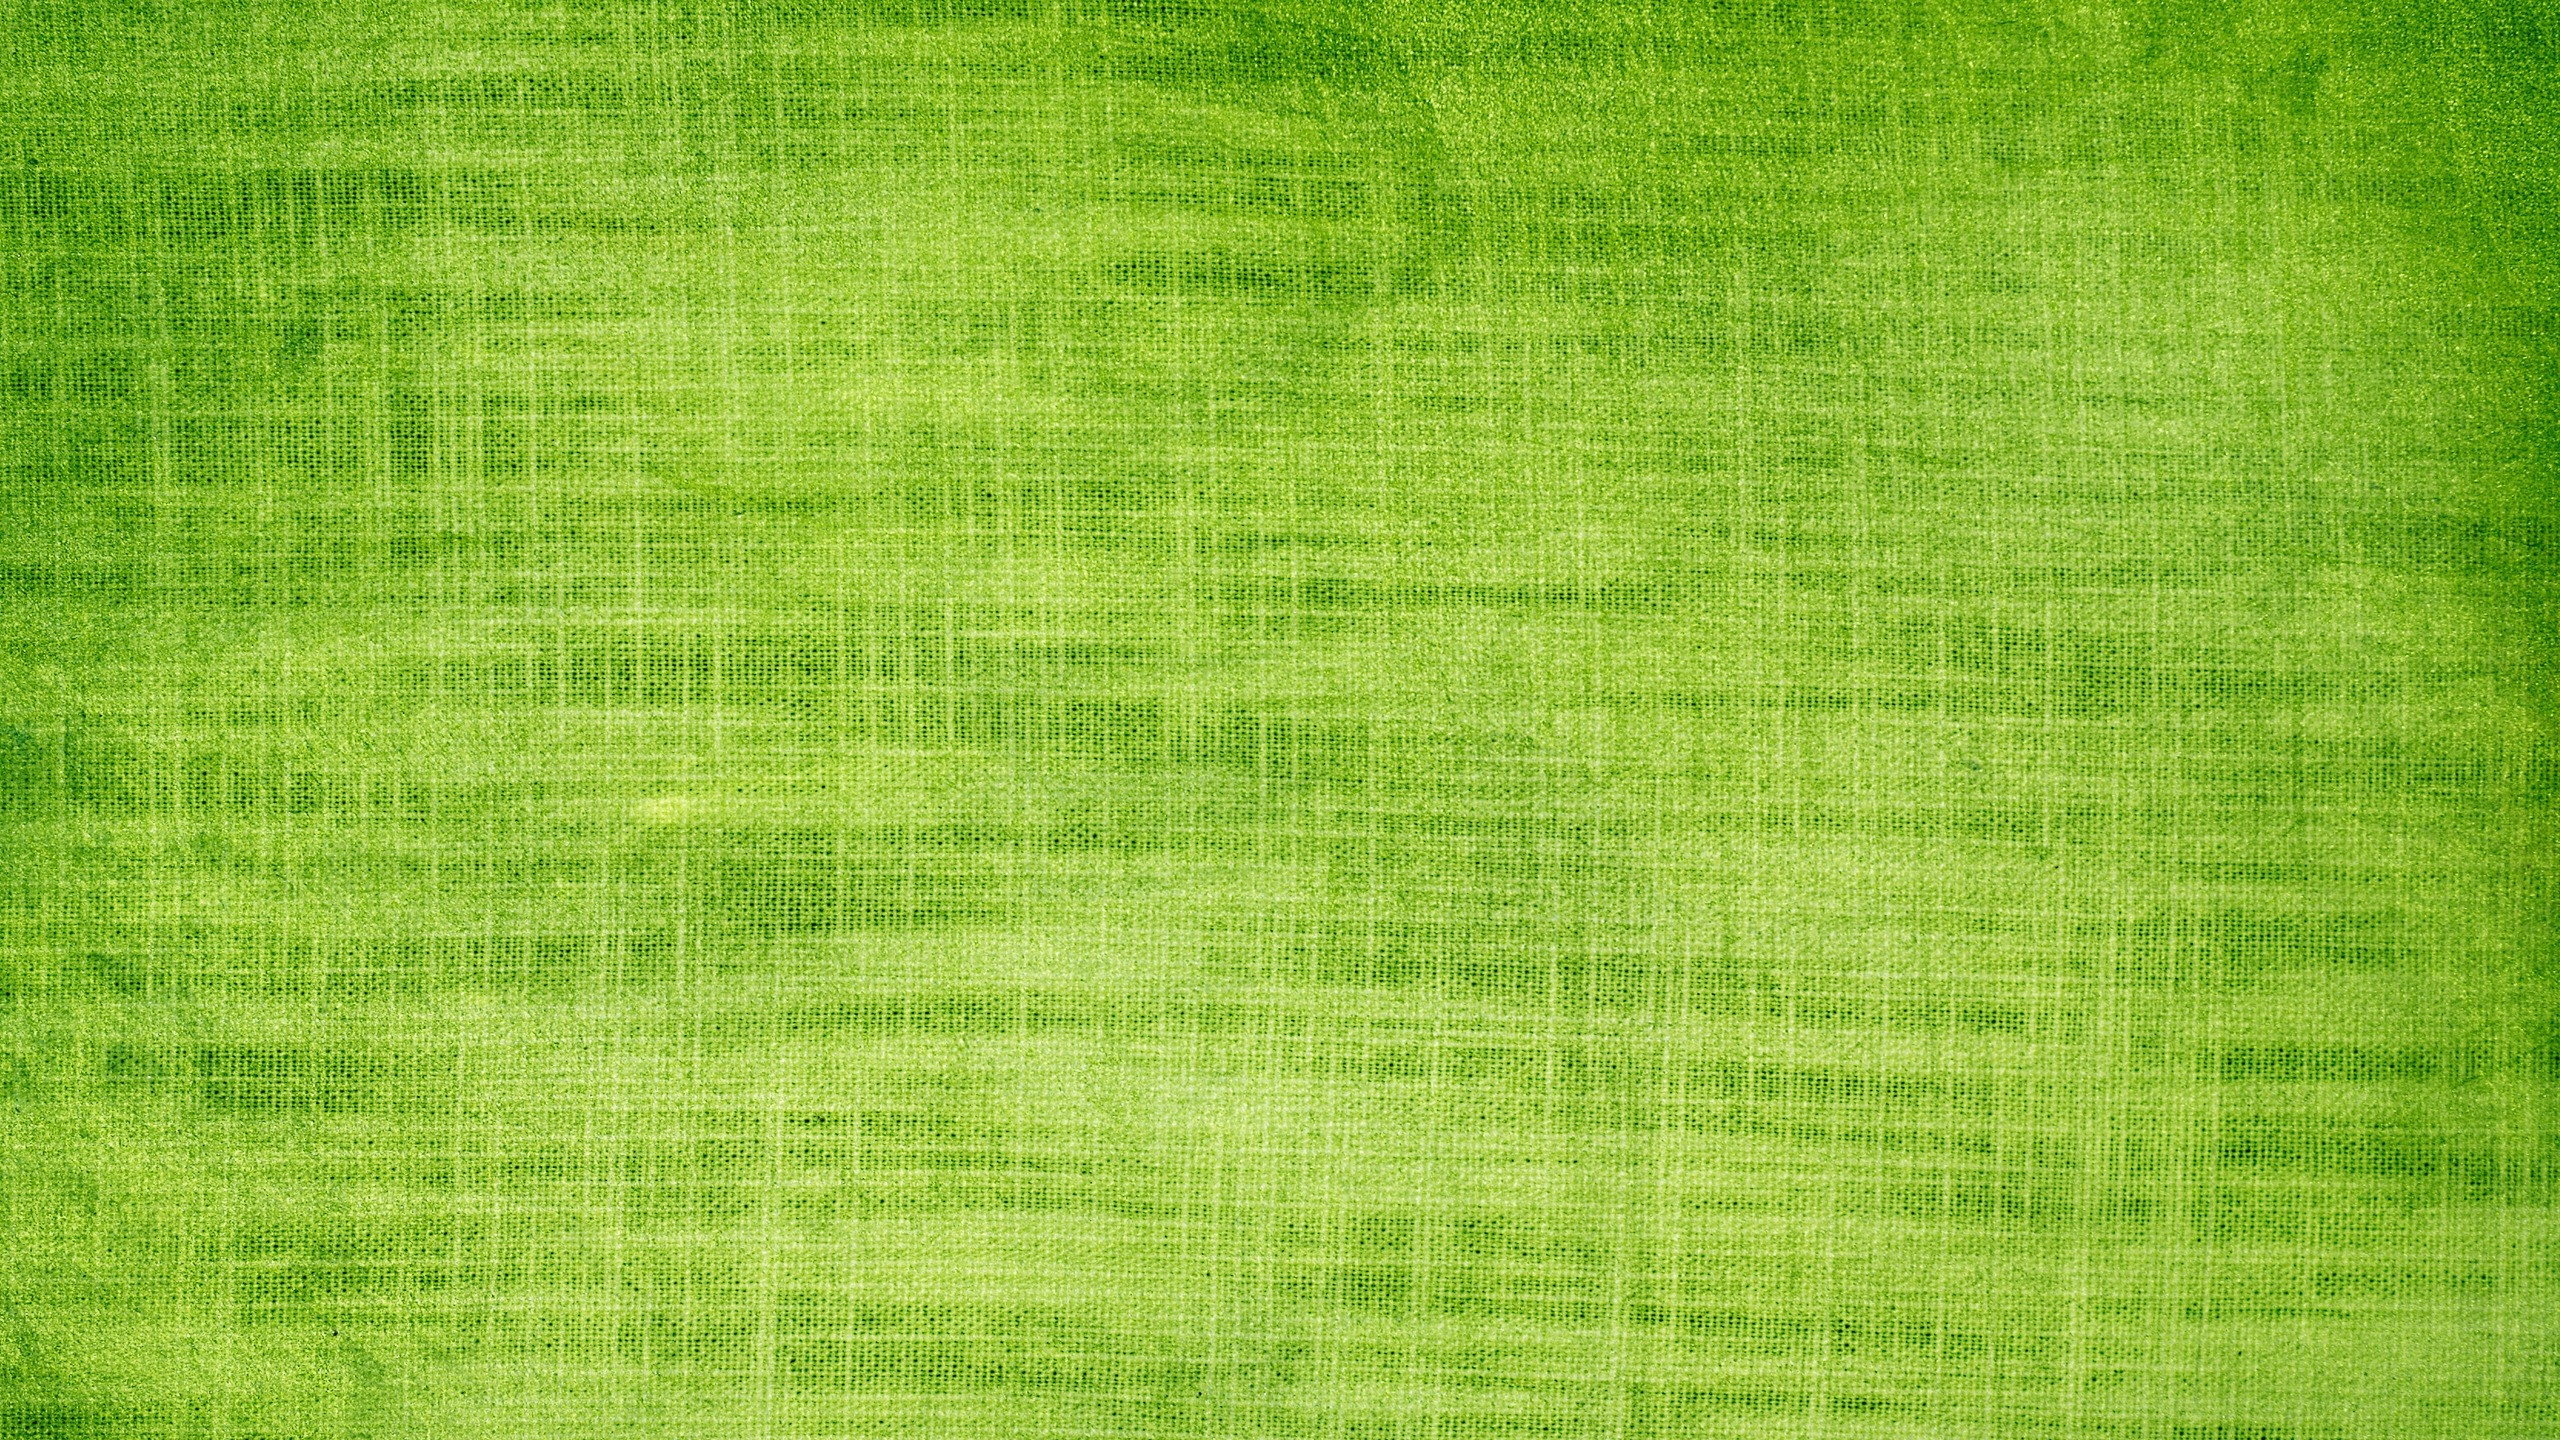 2560x1440 Green Fabric Texture desktop PC and Mac wallpaper for Fabric Texture Pattern Hd  569ane